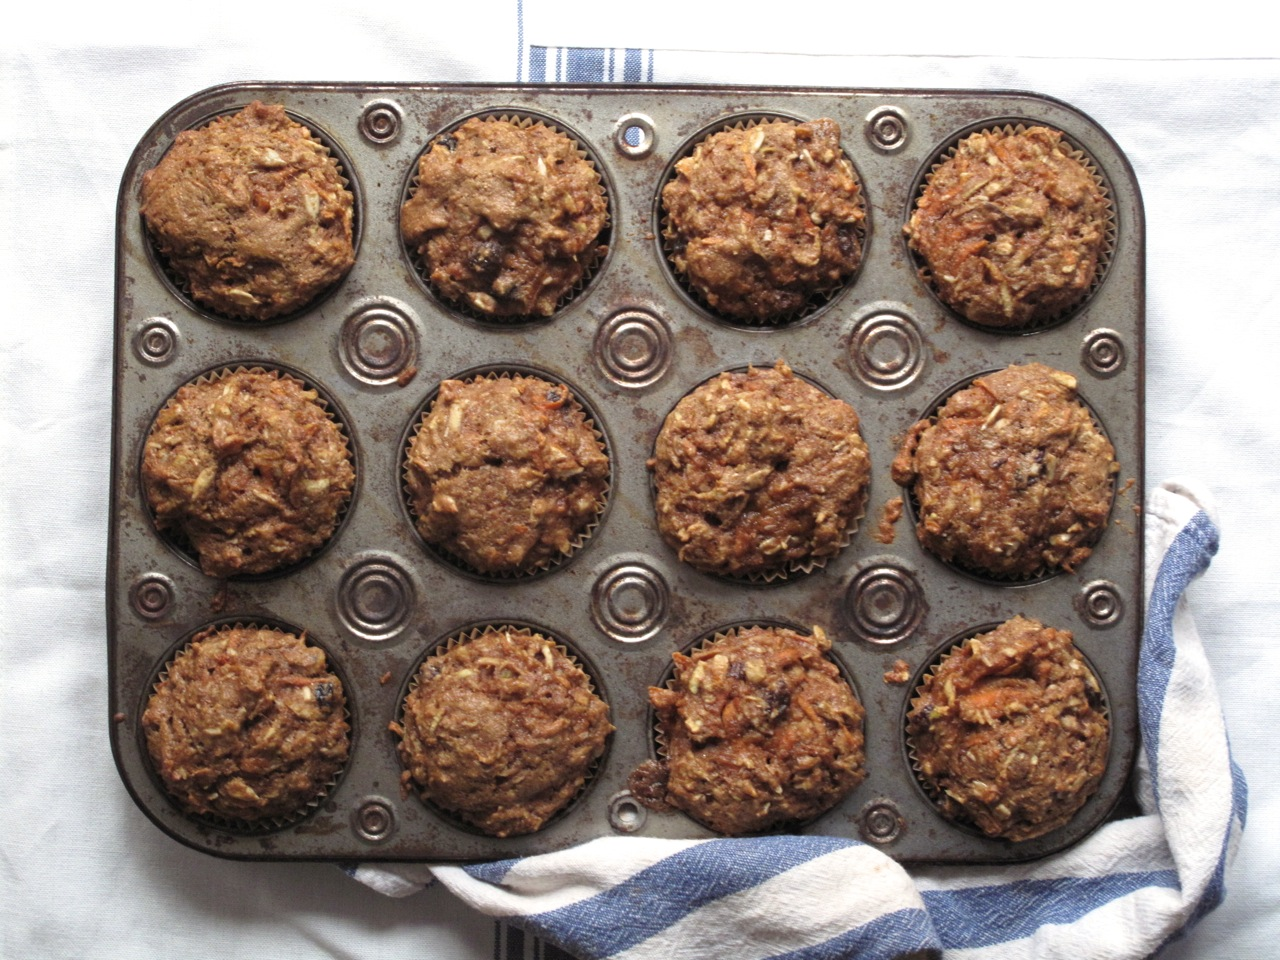 the little house in the city: The Best Morning Glory Muffins Recipe